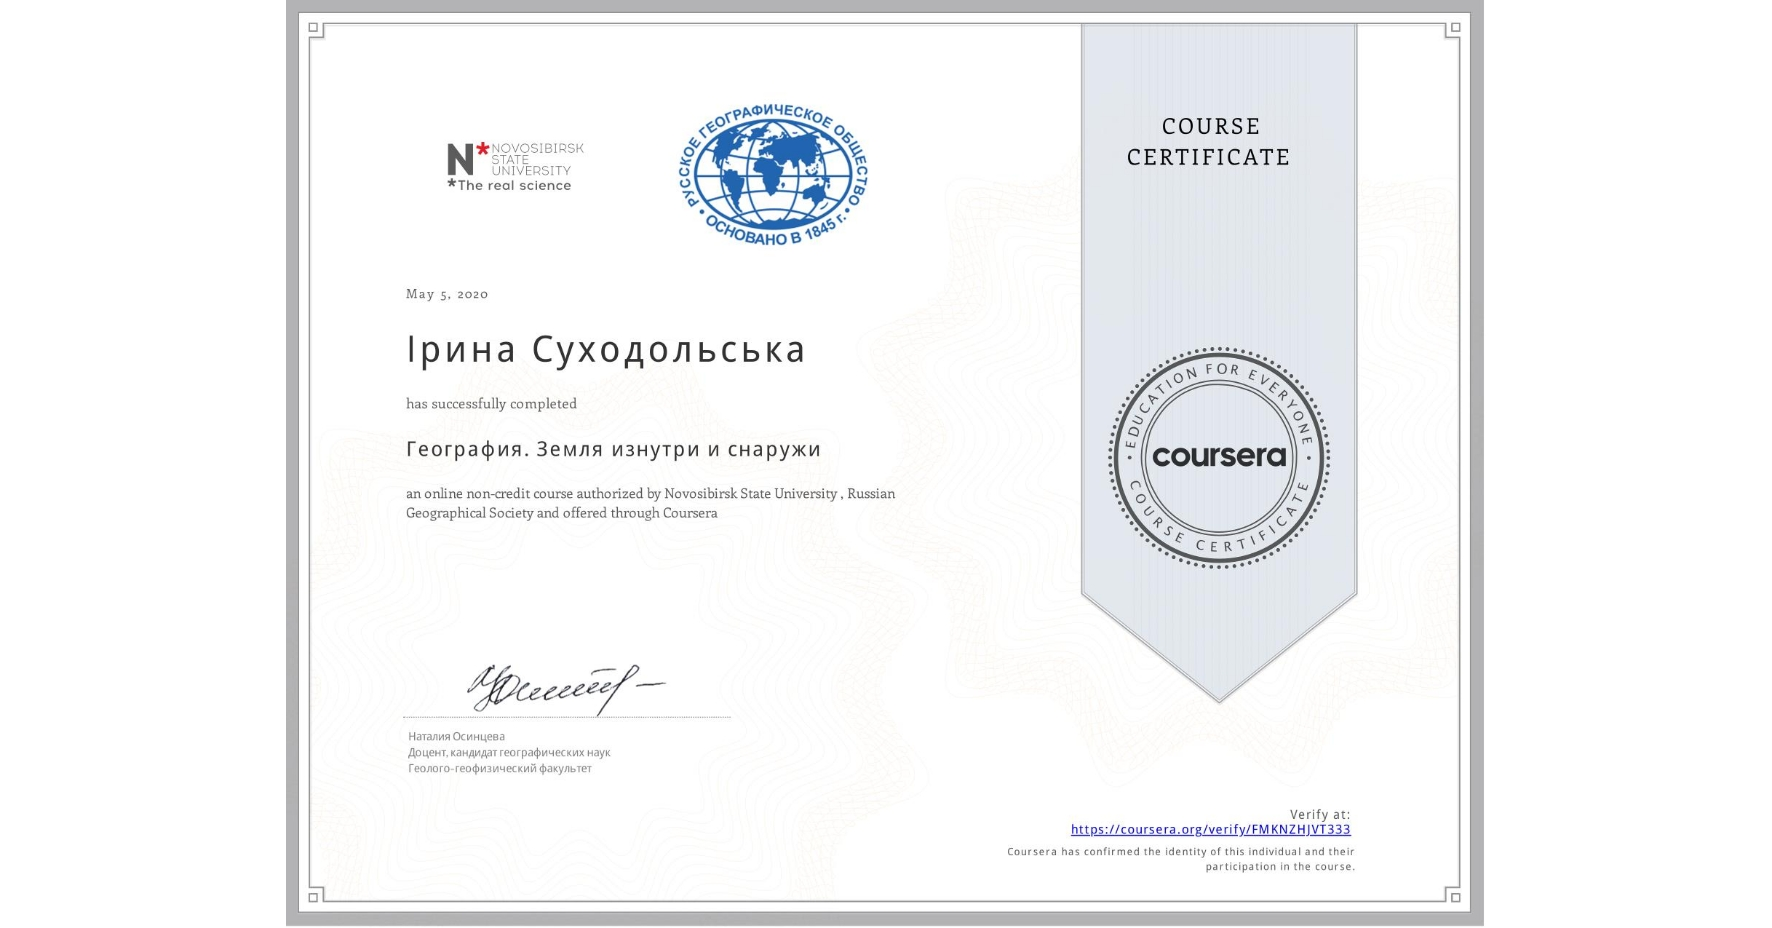 View certificate for Ірина Суходольська, География. Земля изнутри и снаружи, an online non-credit course authorized by Novosibirsk State University  & Russian Geographical Society and offered through Coursera